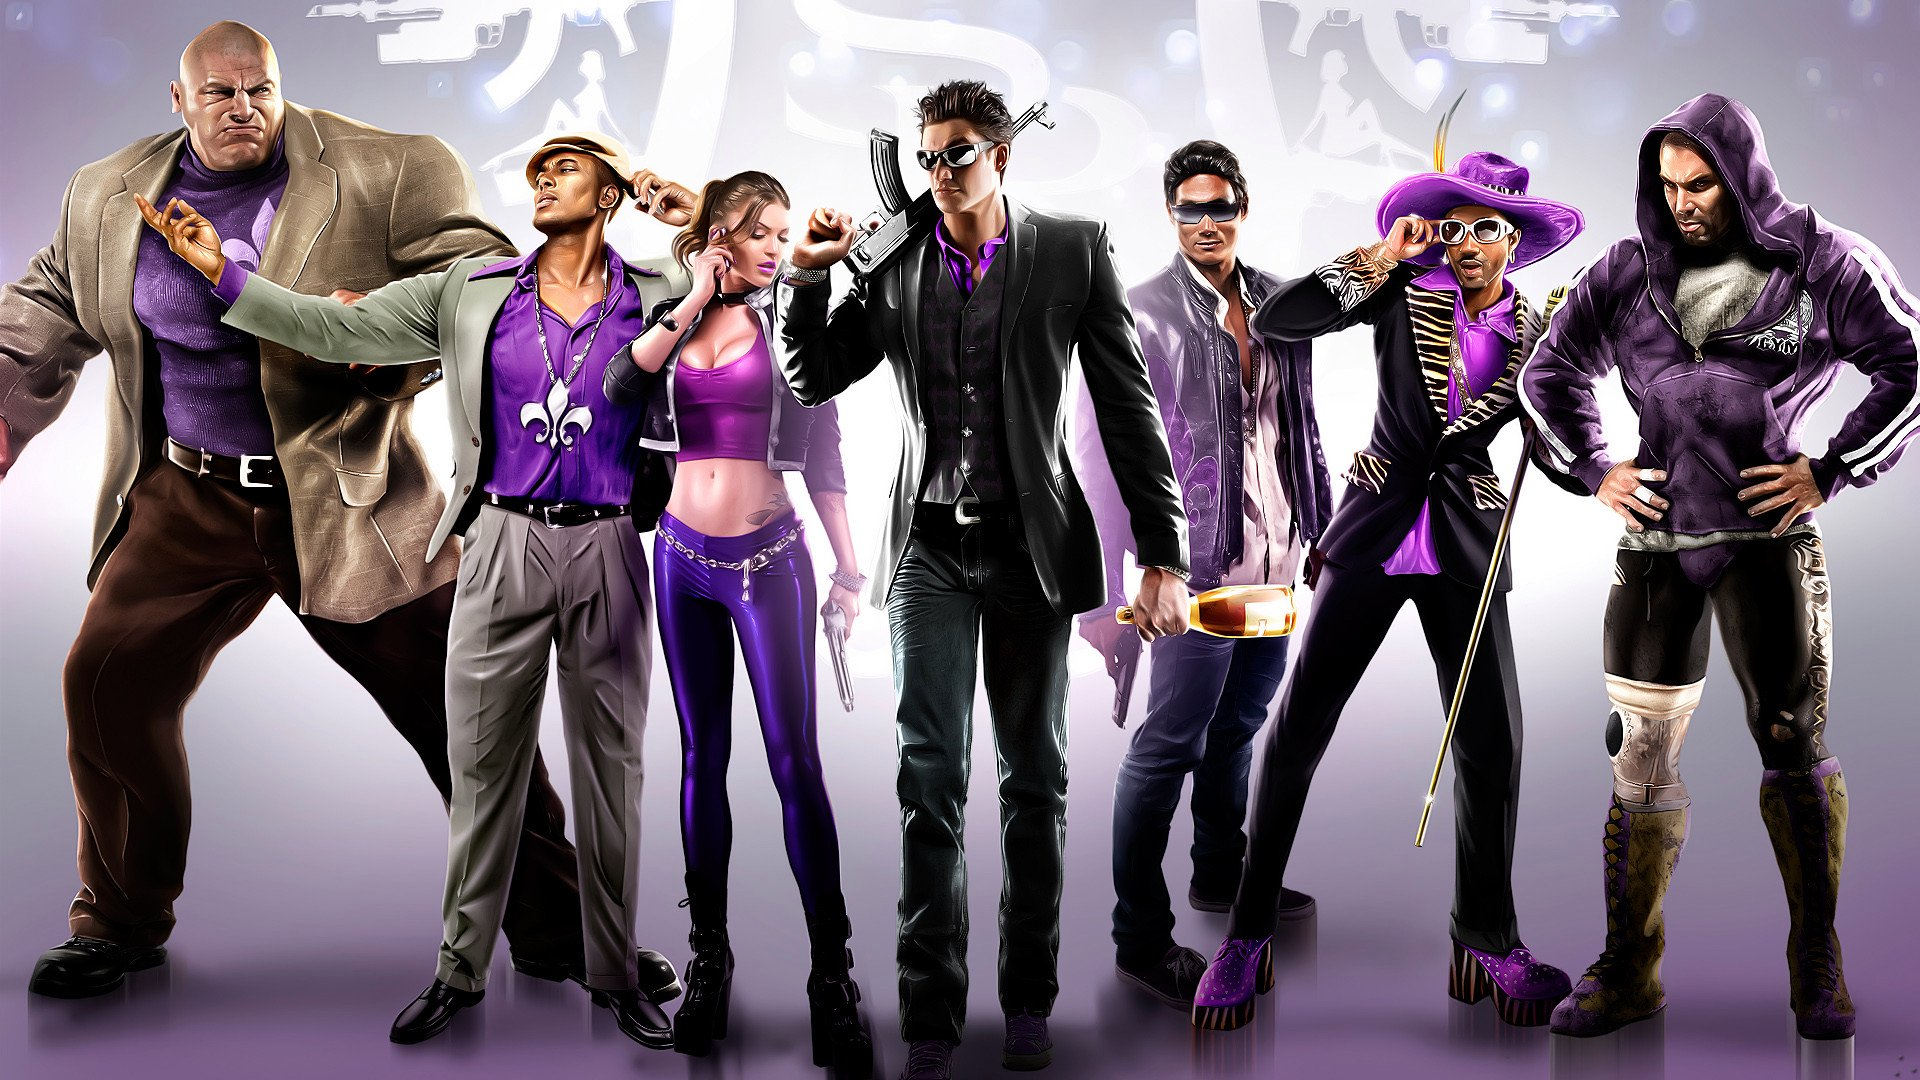 Saints Row 3 Remastered Release Date, Price, Gameplay And Trailer